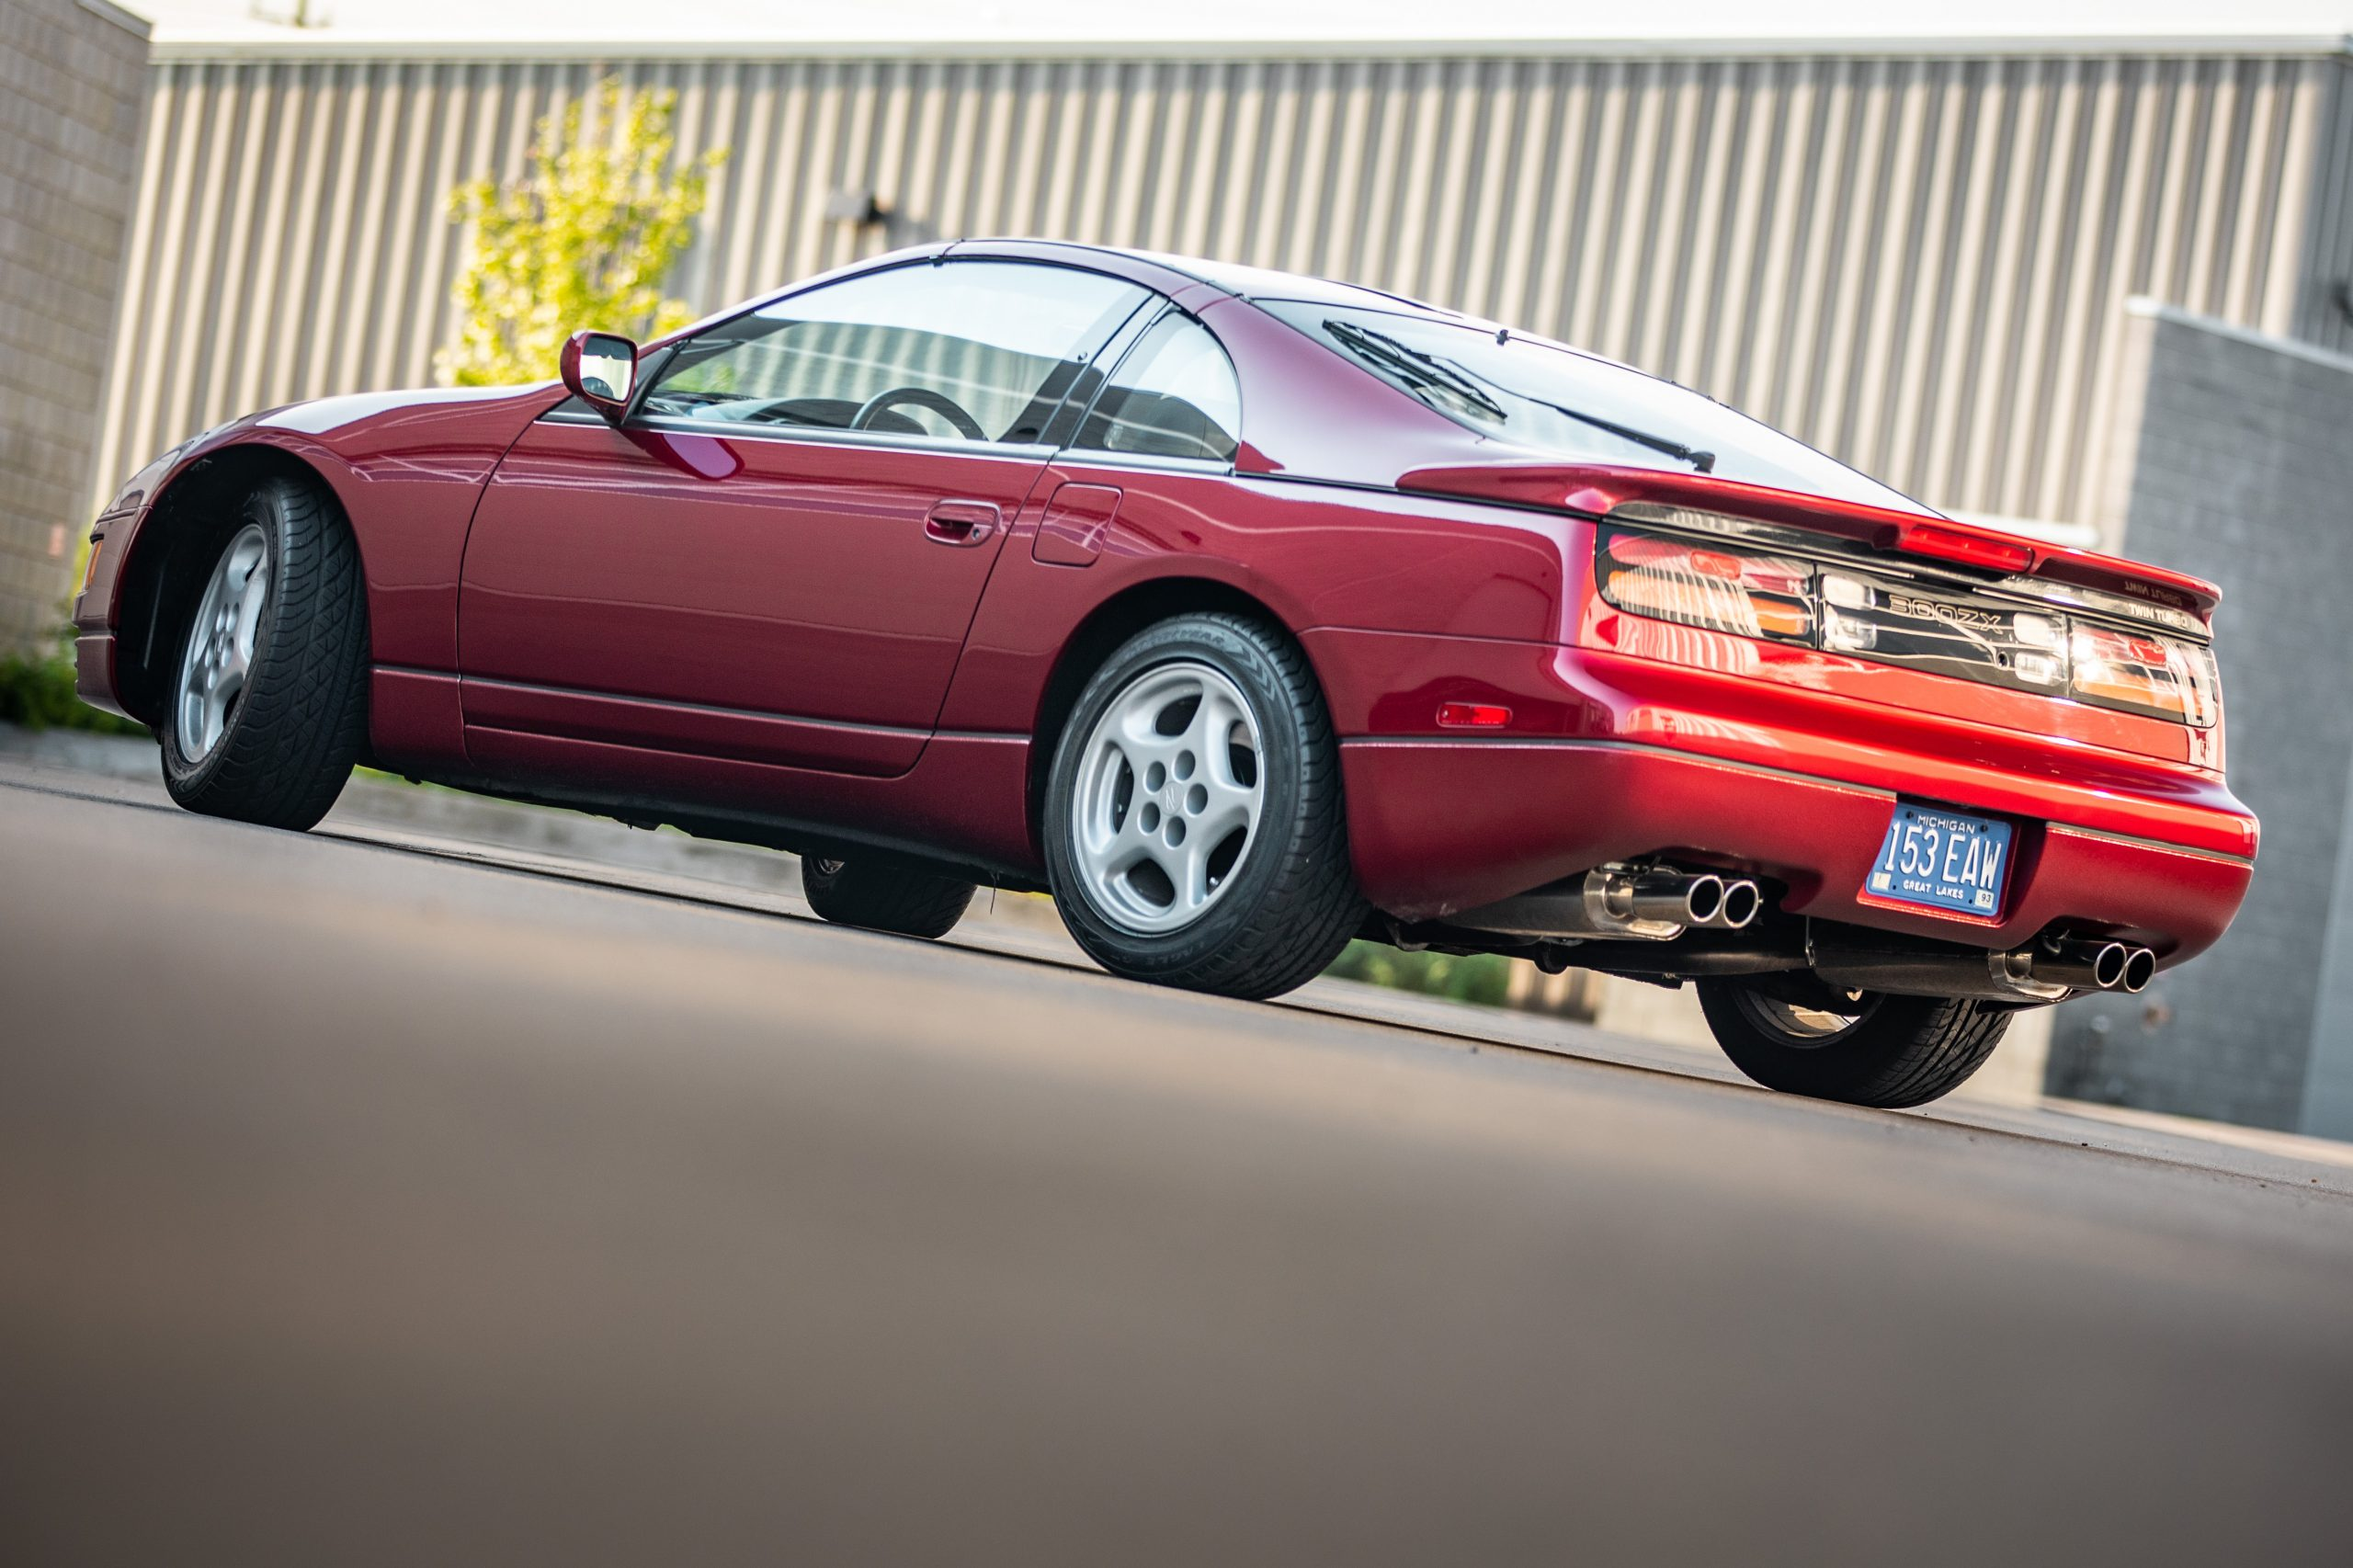 Nissan 300ZX rear three-quarter